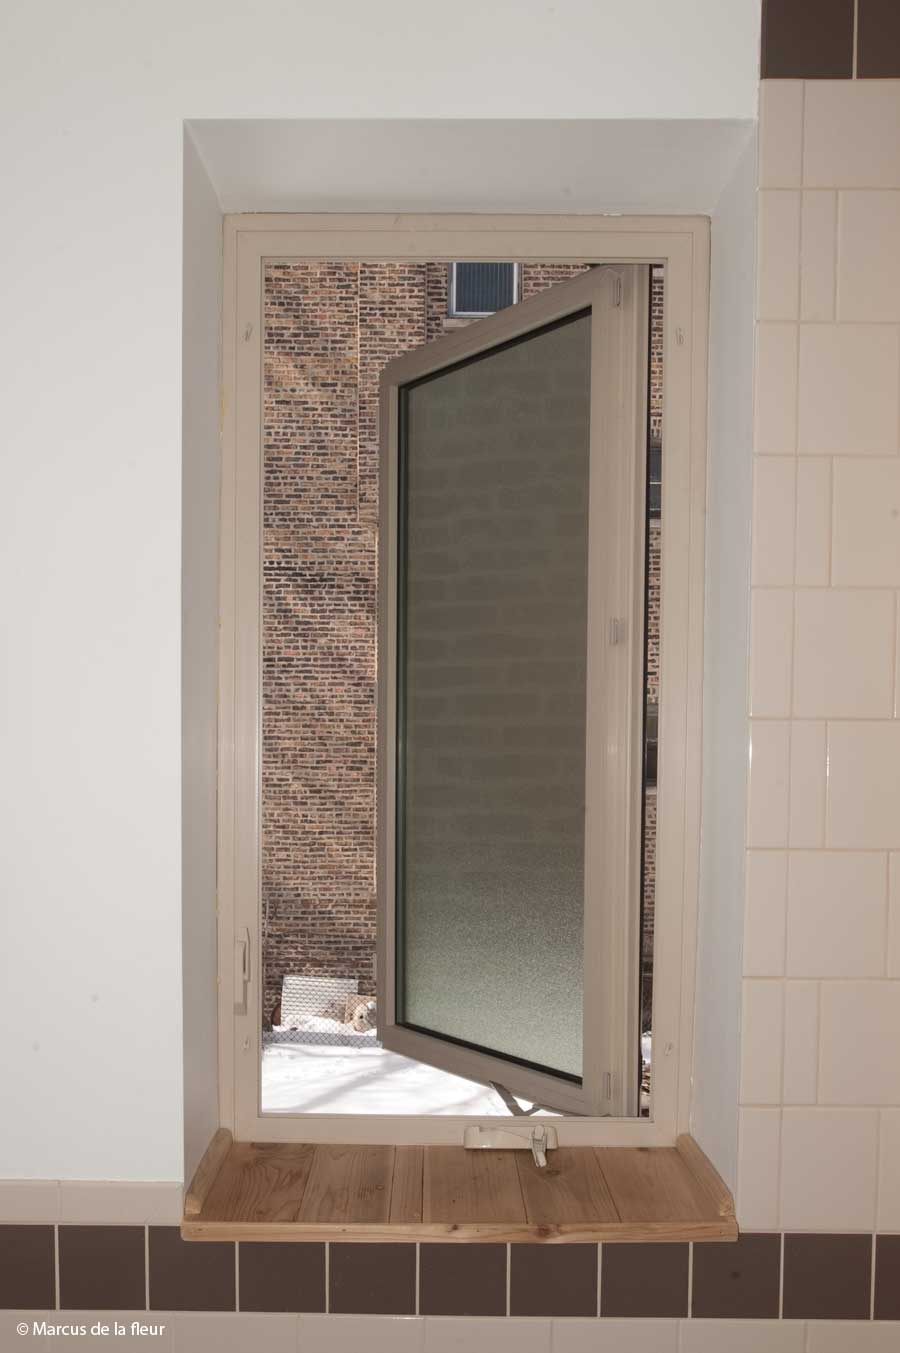 Bathroom Windows Replacement window | reshaping our footprint | page 2